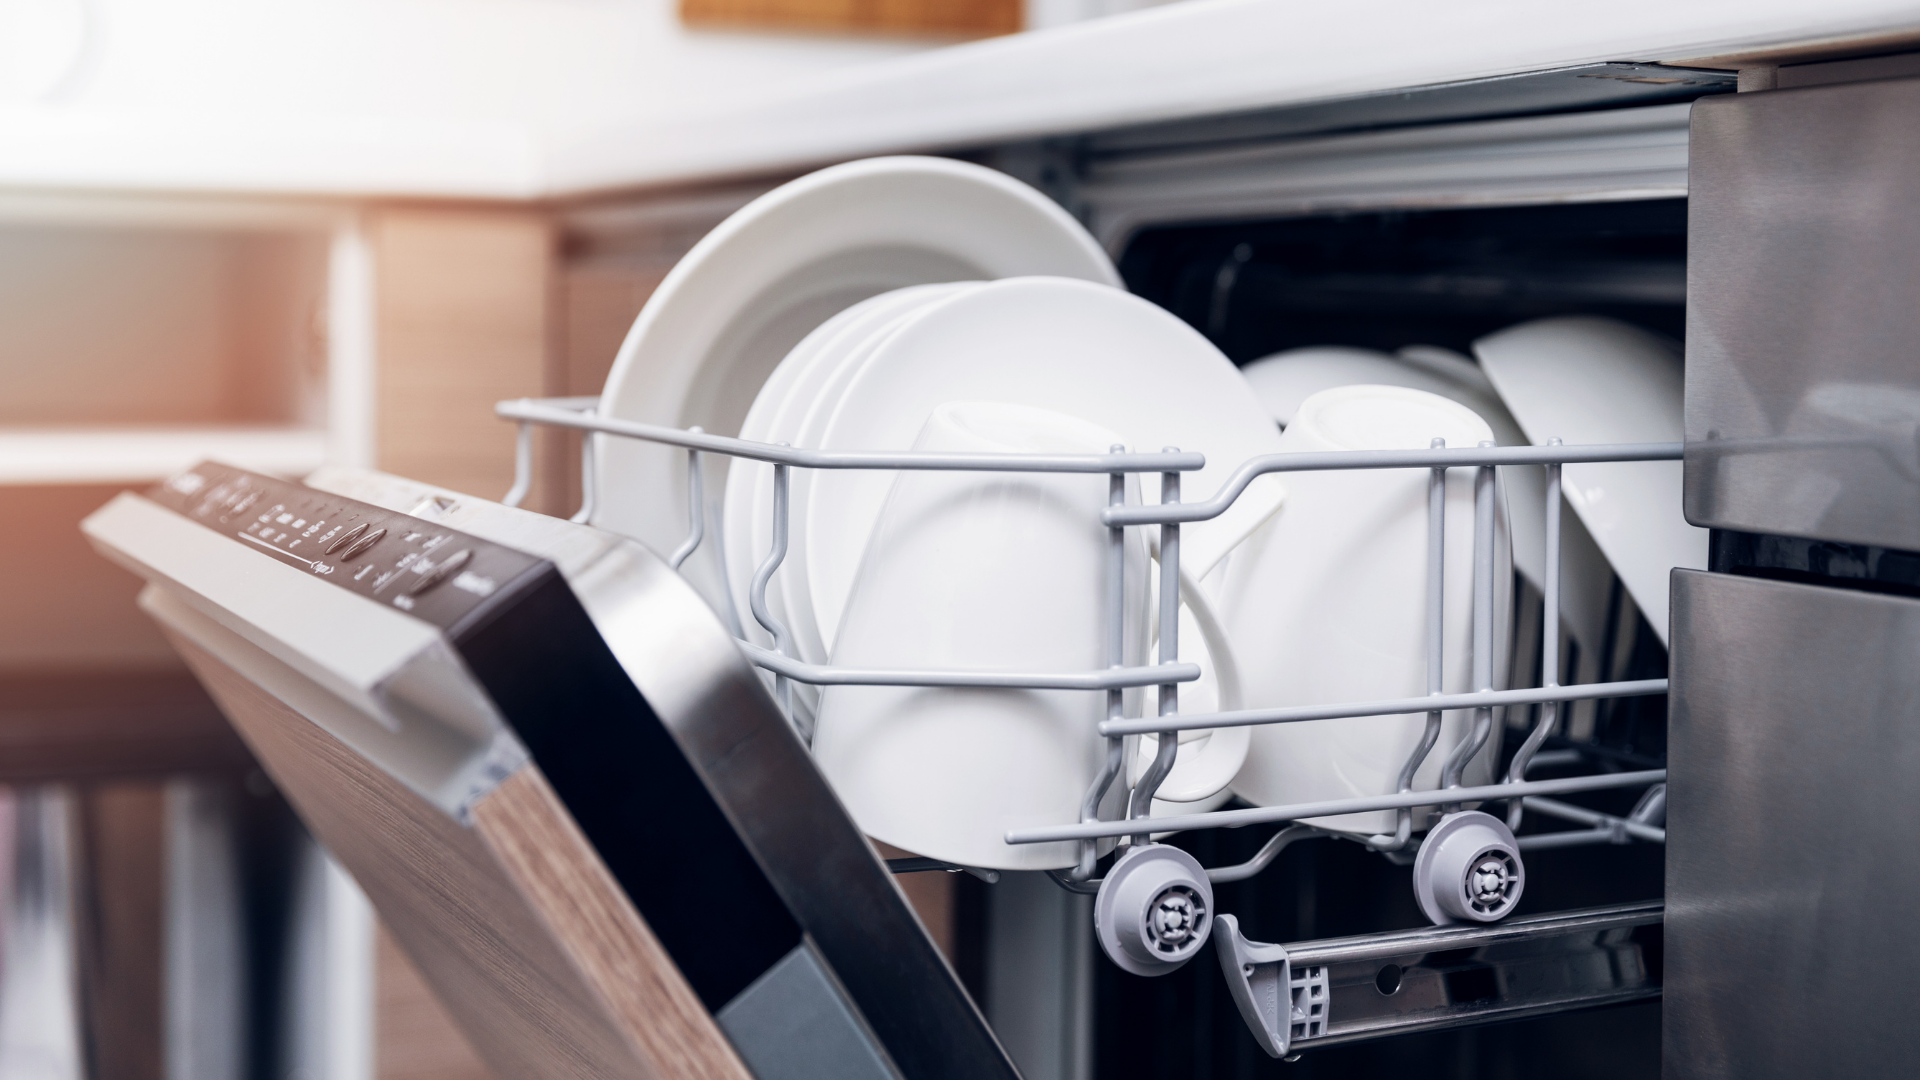 How to clean your office dishwasher